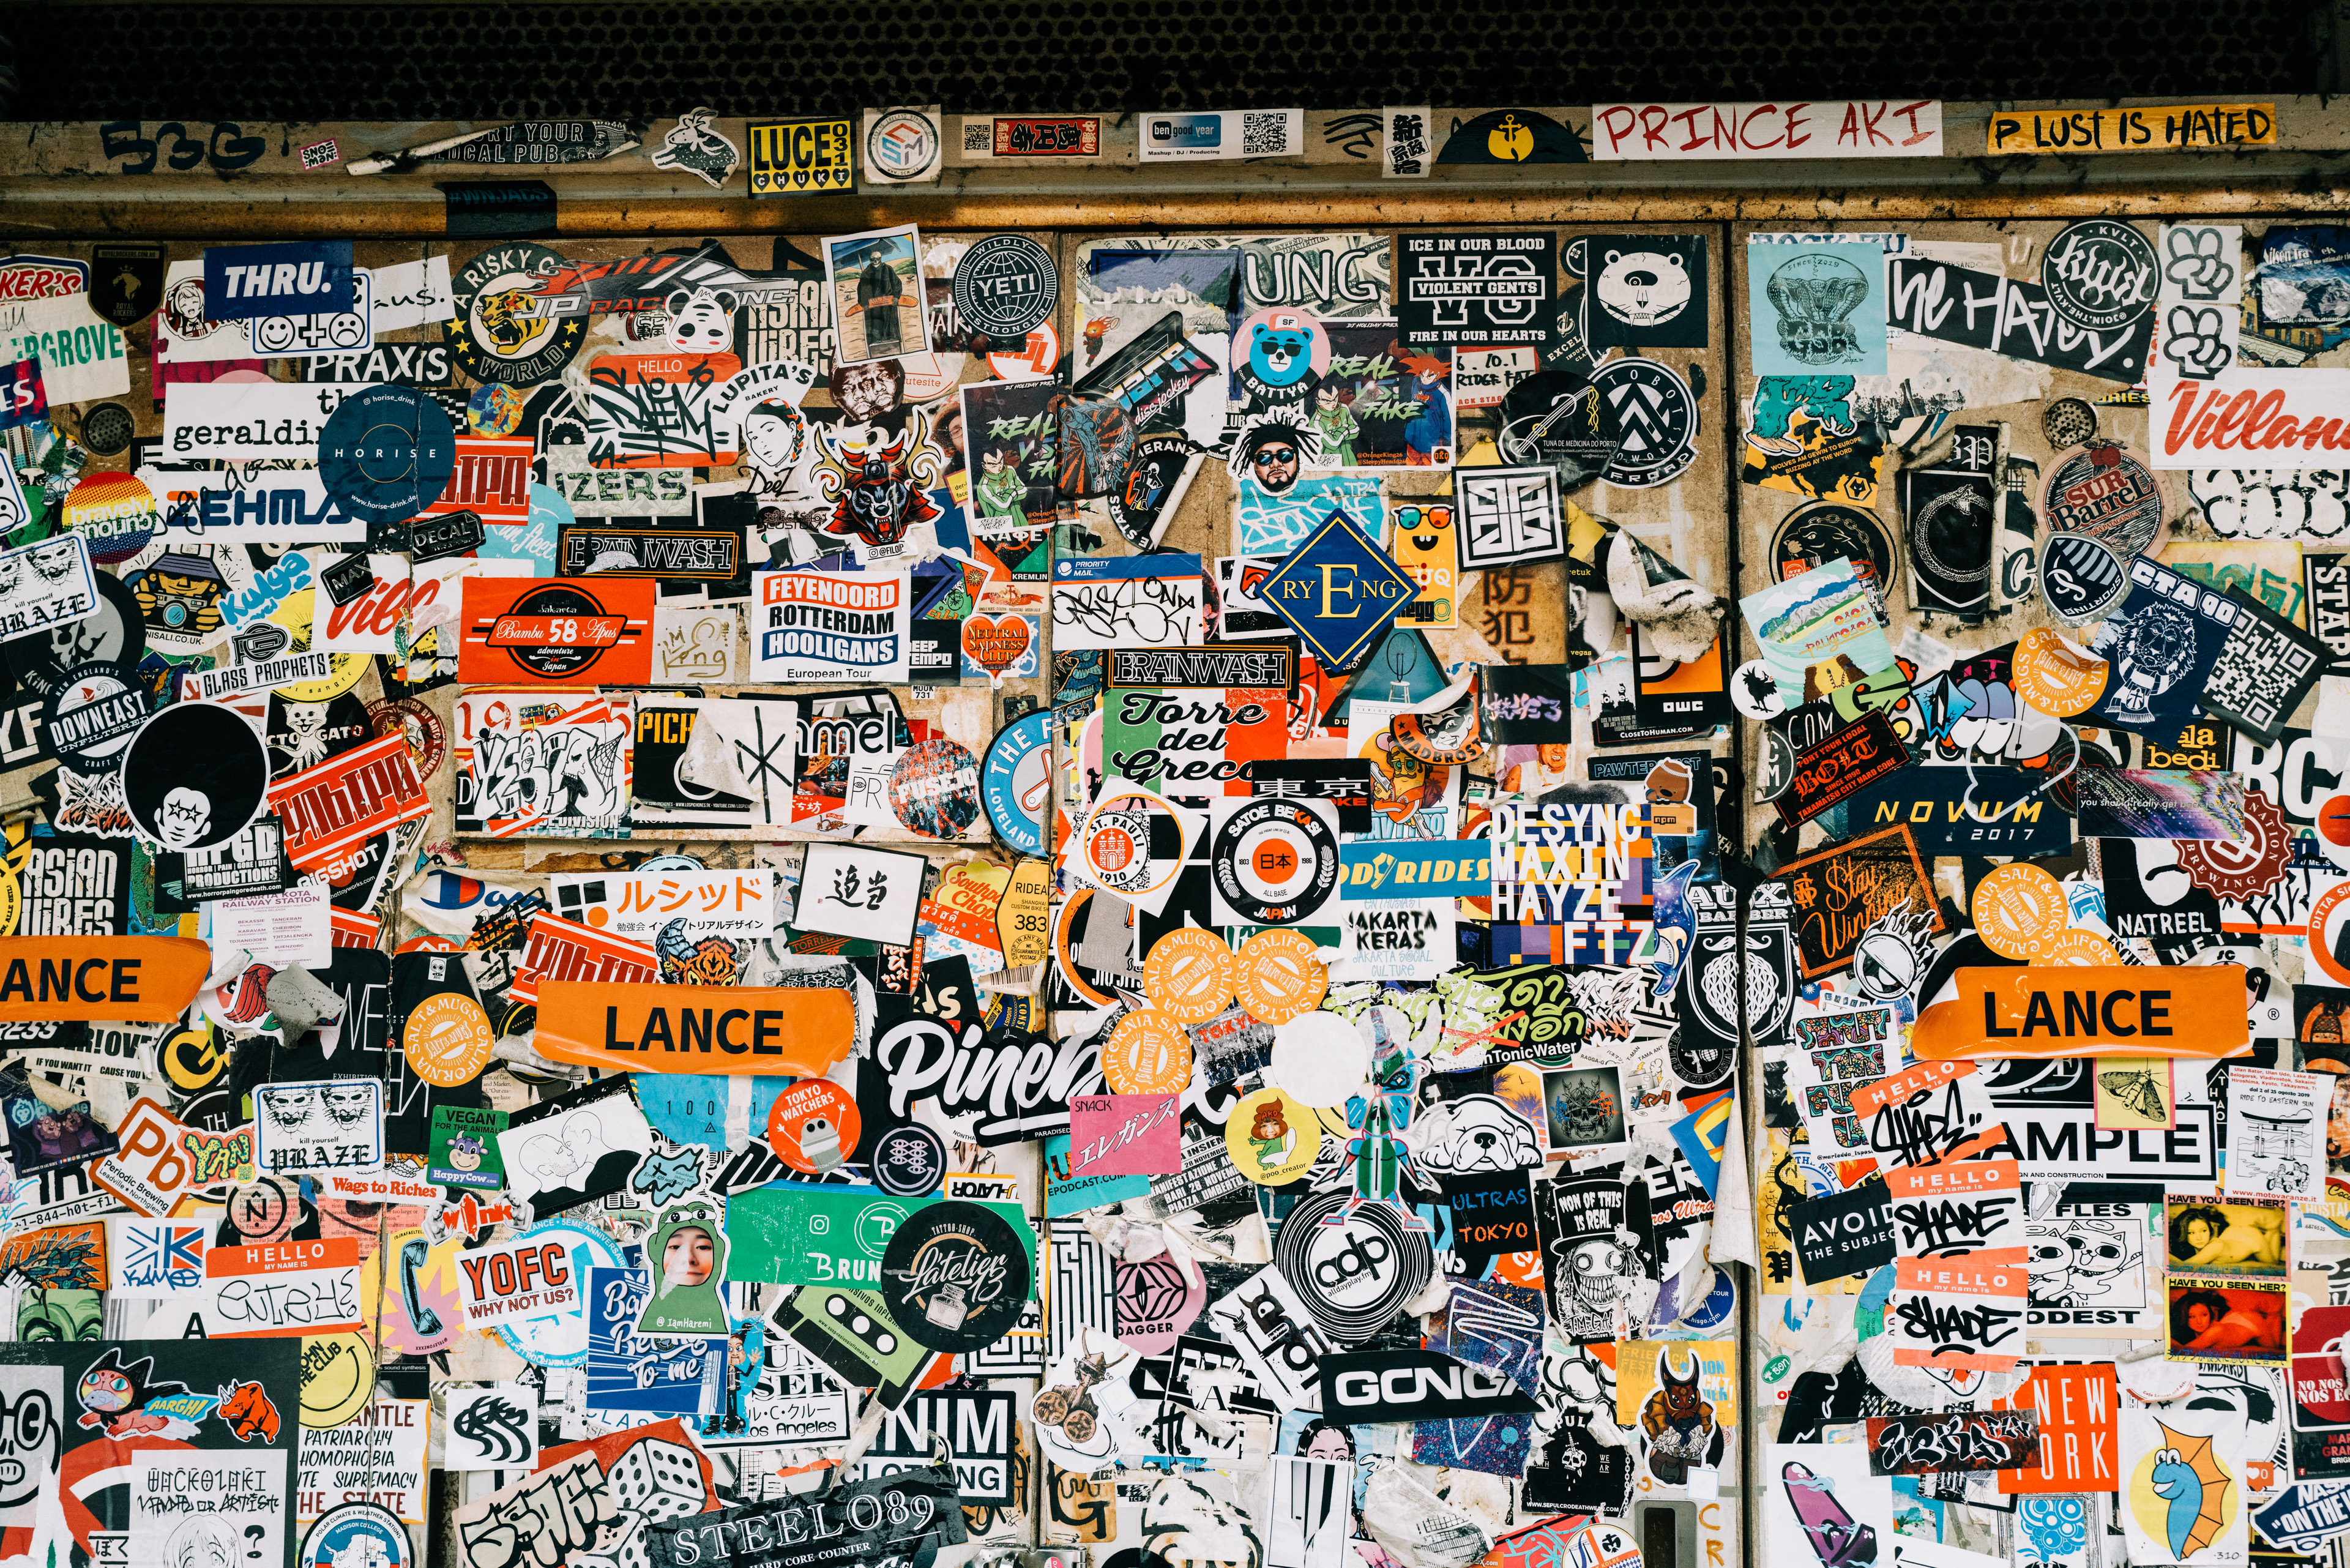 A wall of stickers at Golden Gai in Shinjuku.